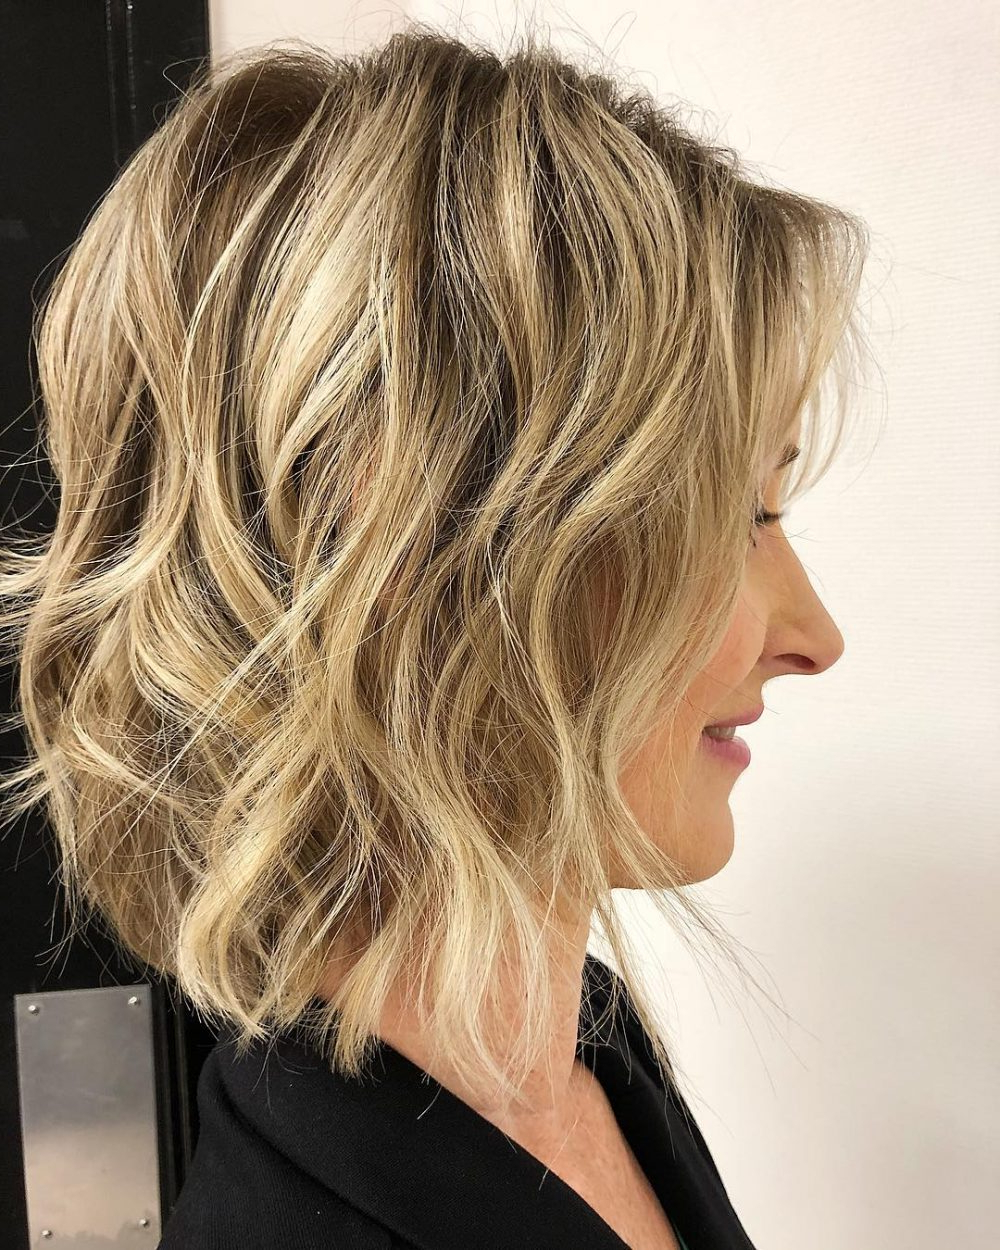 43 Perfect Short Hairstyles For Fine Hair In 2018 Within Tousled Wavy Blonde Bob Hairstyles (View 18 of 25)